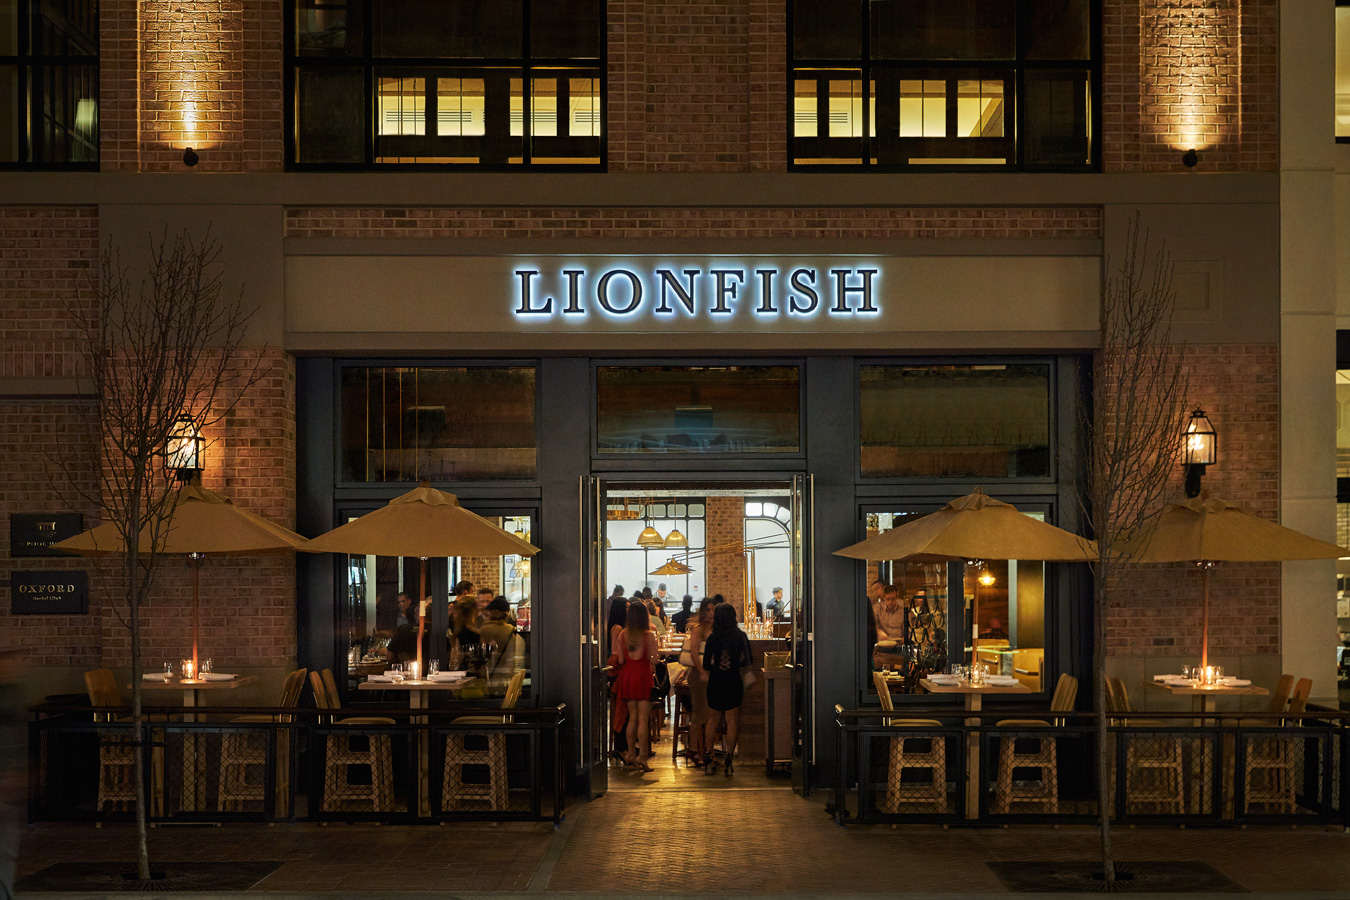 What Makes Lionfish Stand Out?